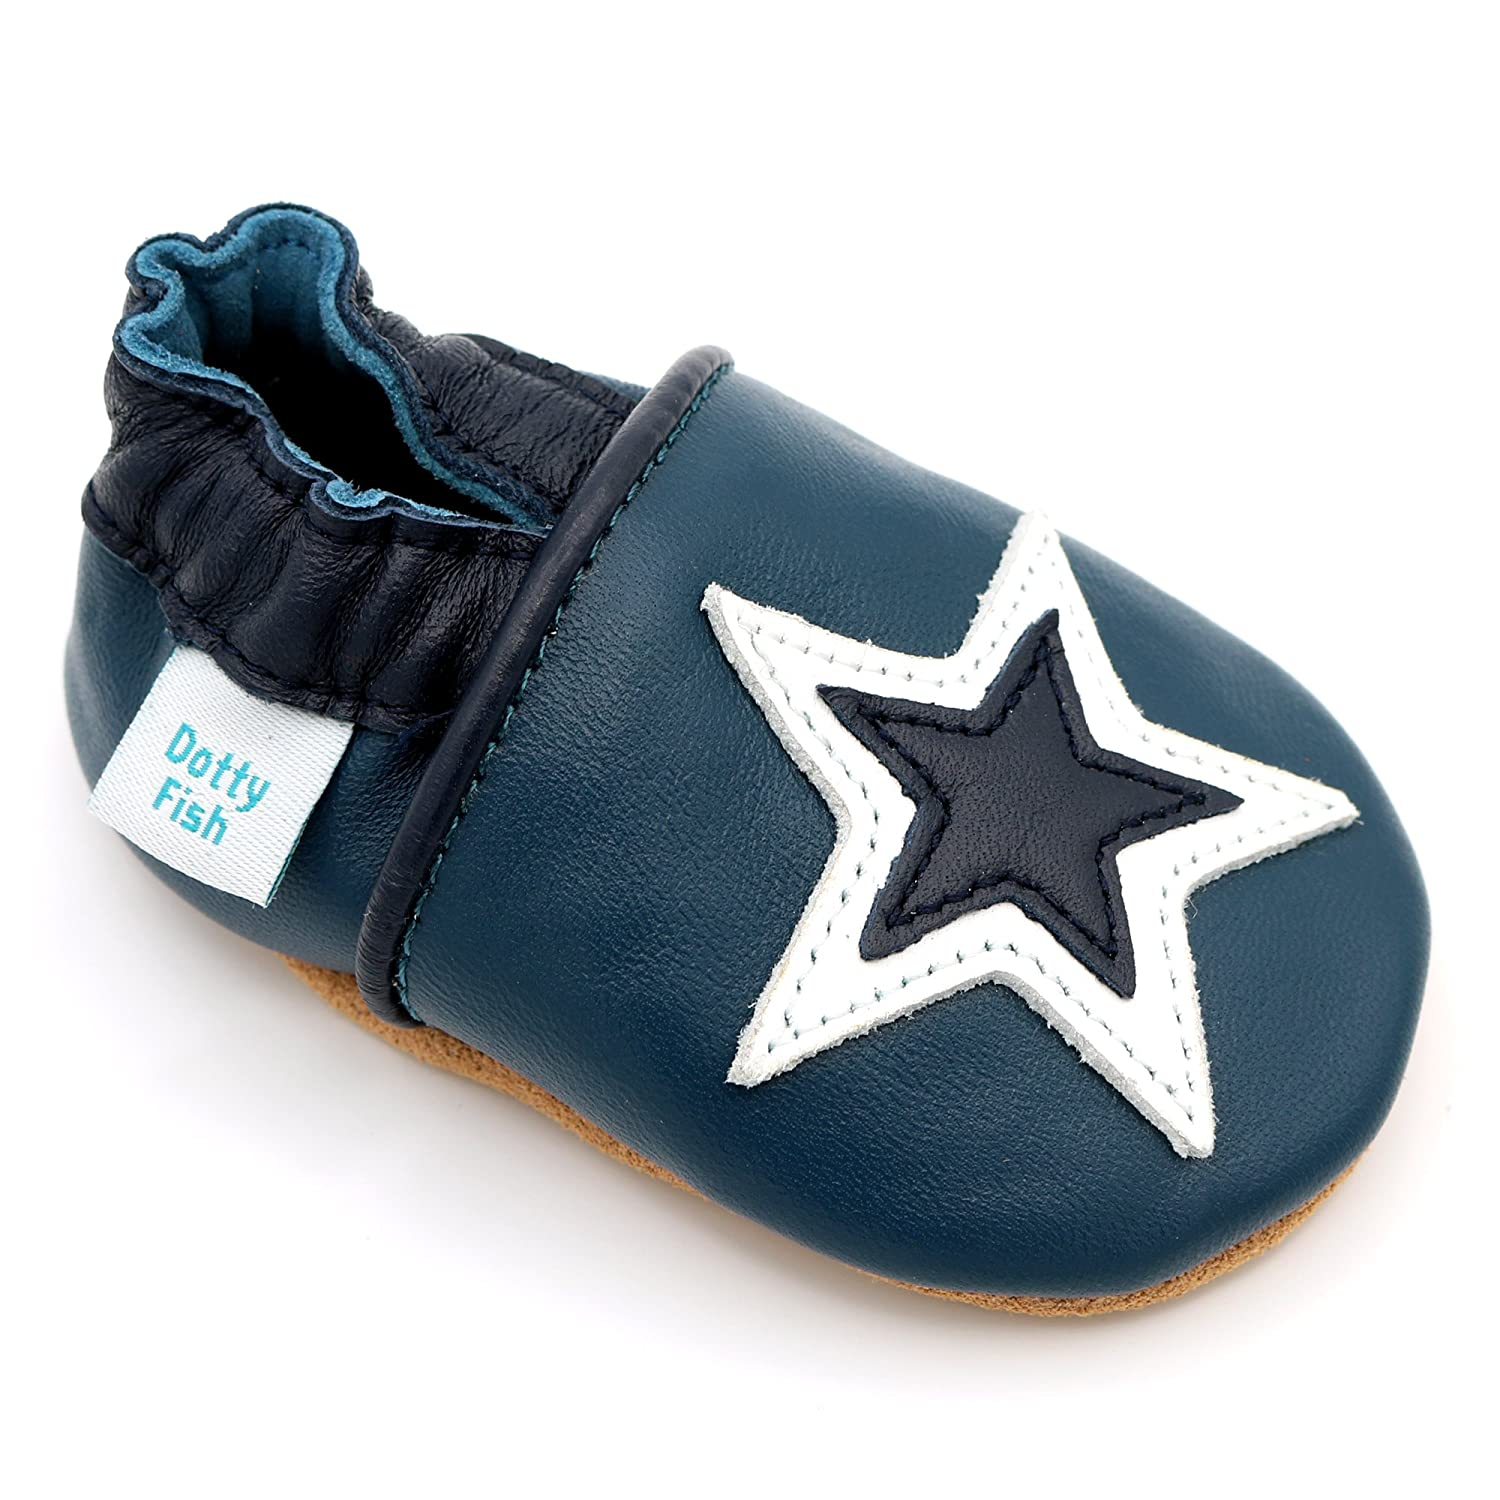 d0143756d0c58 Dotty Fish Soft Leather Baby Shoes. 0-6 Months to 4-5 Years. Boys and Girls  with Navy Blue, Pink and Grey Stars. Non Slip. Toddler Shoes.